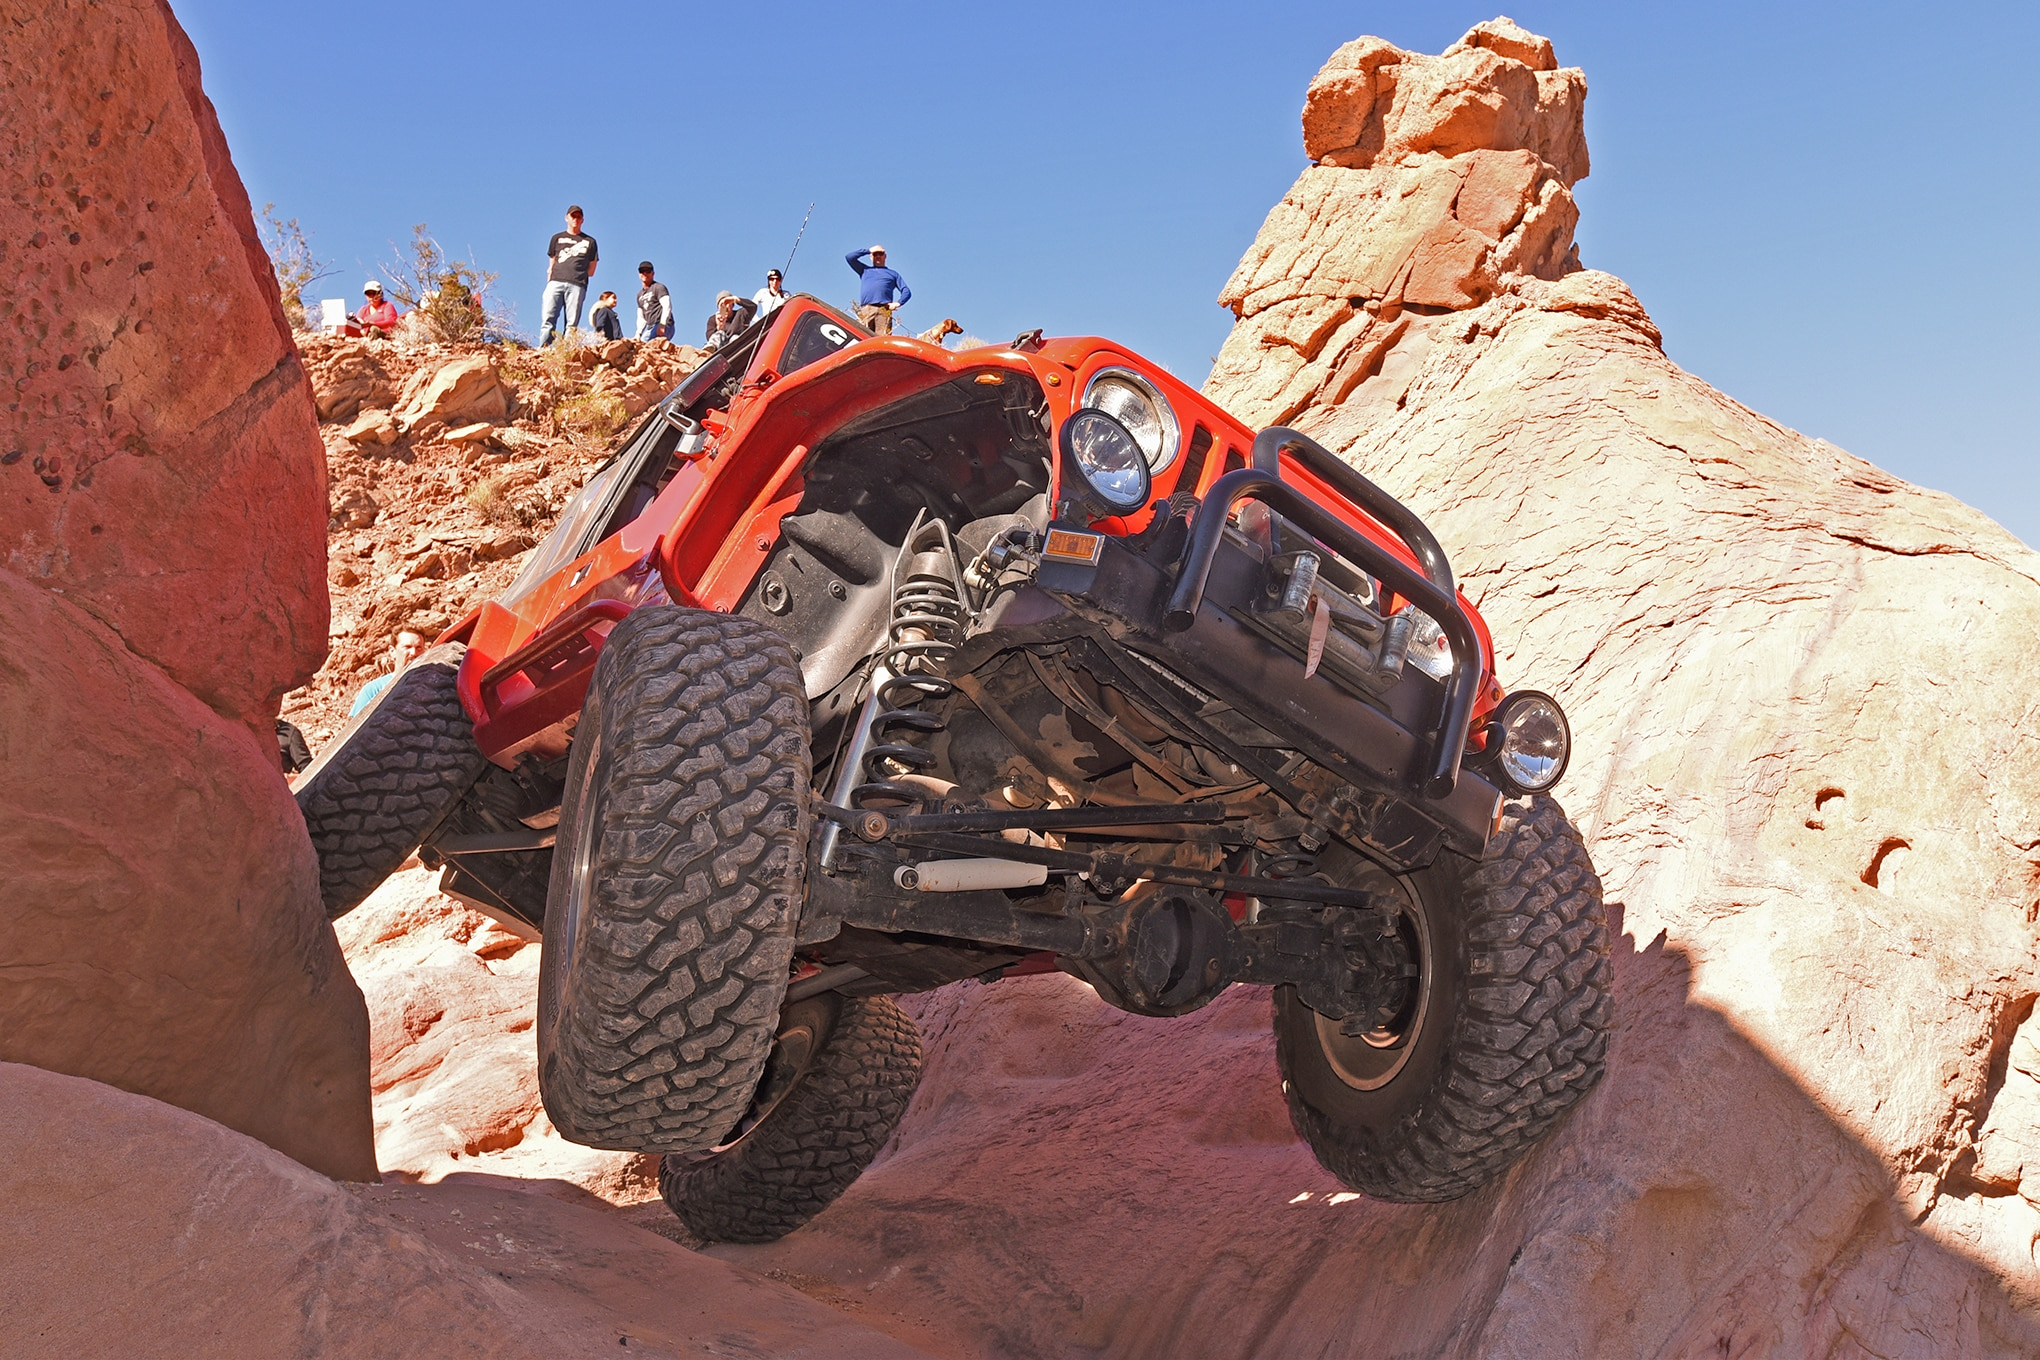 Red Rock Rider - Gary Shaffer's Custom 1997 TJ